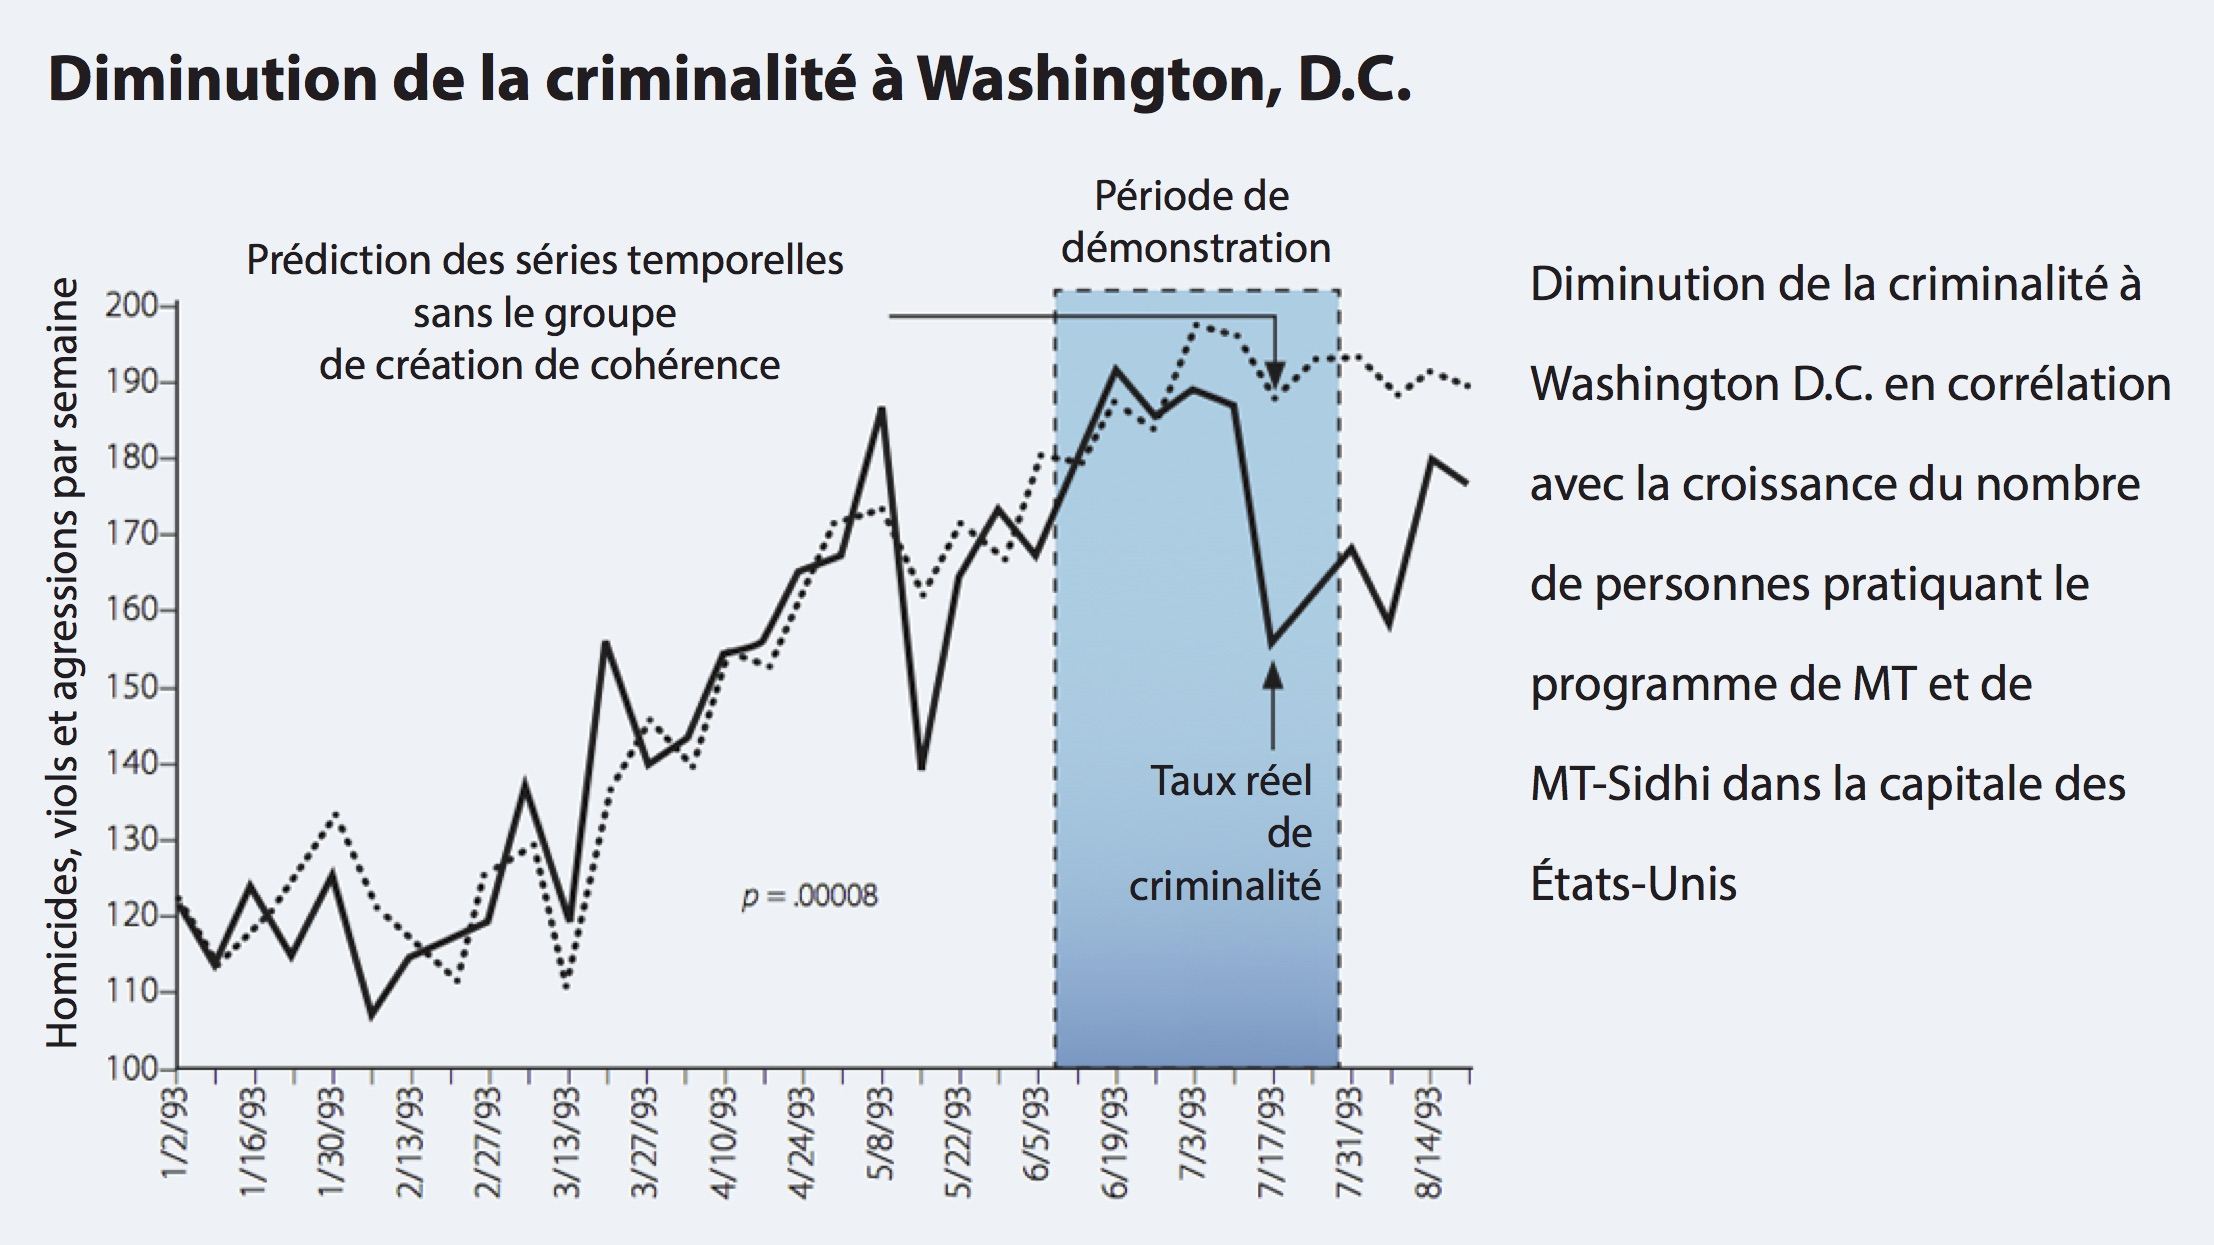 Decreased Crime in Washington DC